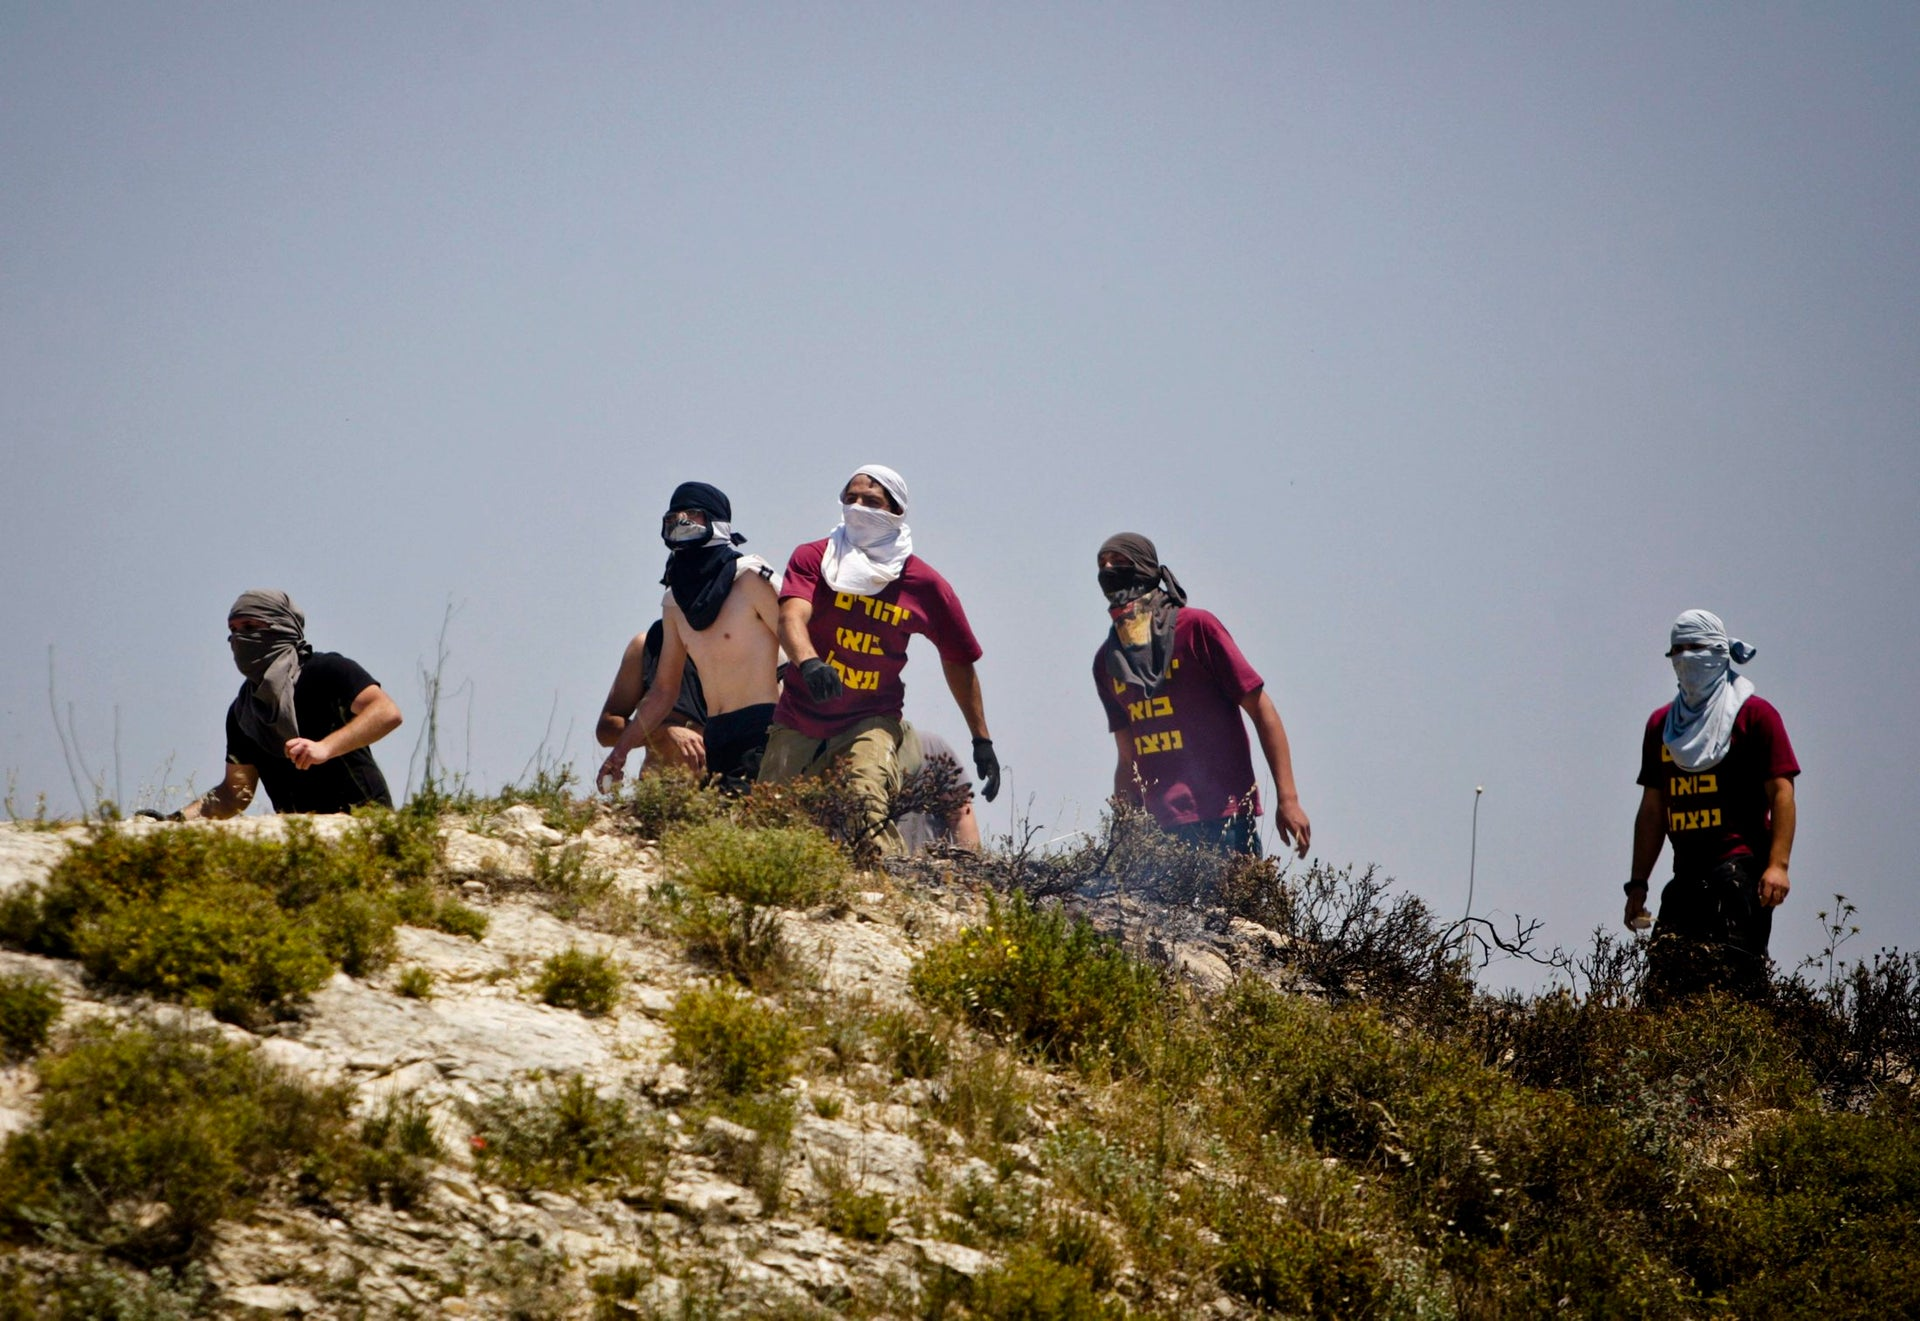 File photo of Jewish settlers throwing rocks towards Palestinians during clashes near the Jewish settlement of Yitzhar, near Nablus, April 30, 2013.